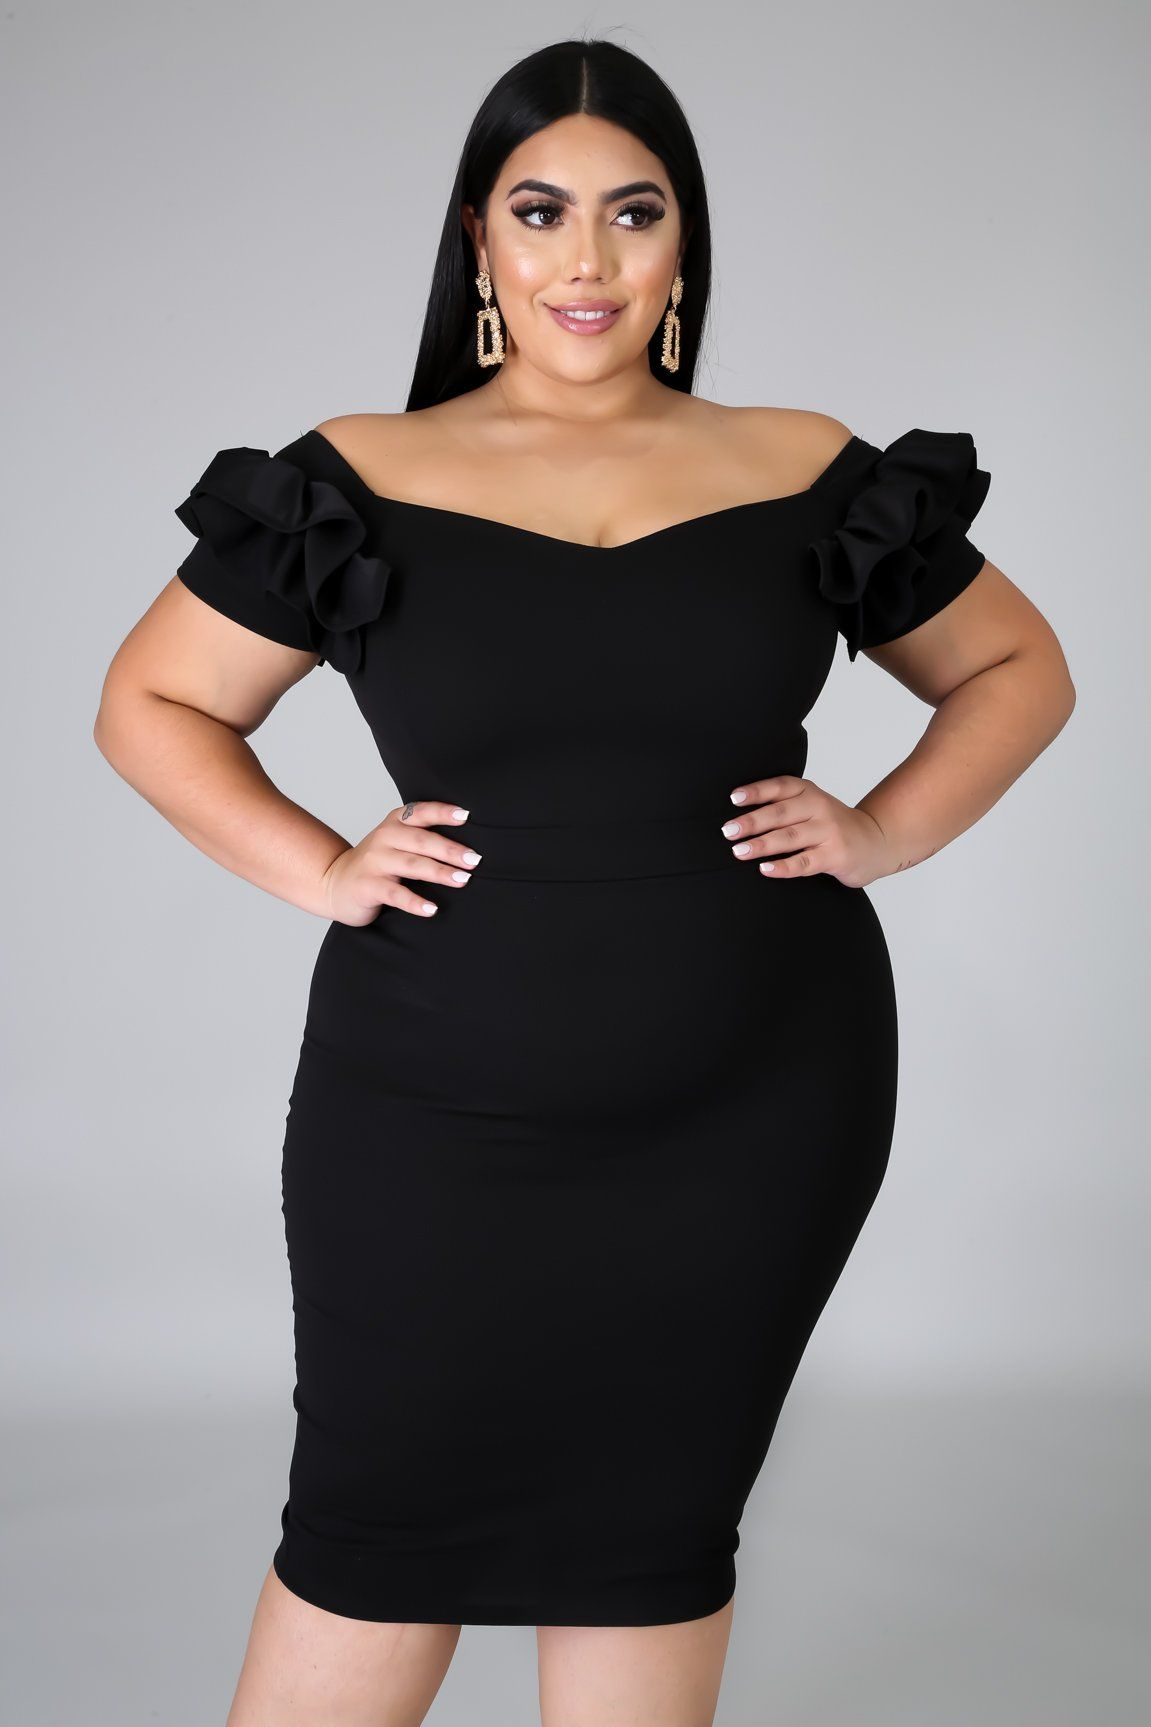 Queen Pleats Body Con Dress Style Gt1754 Xdescriptionthis Queen Pleats Body Con Dress Features A Stretchy Fabric V Neck Bodycon Dress Dresses Curvy Outfits [ 1727 x 1151 Pixel ]